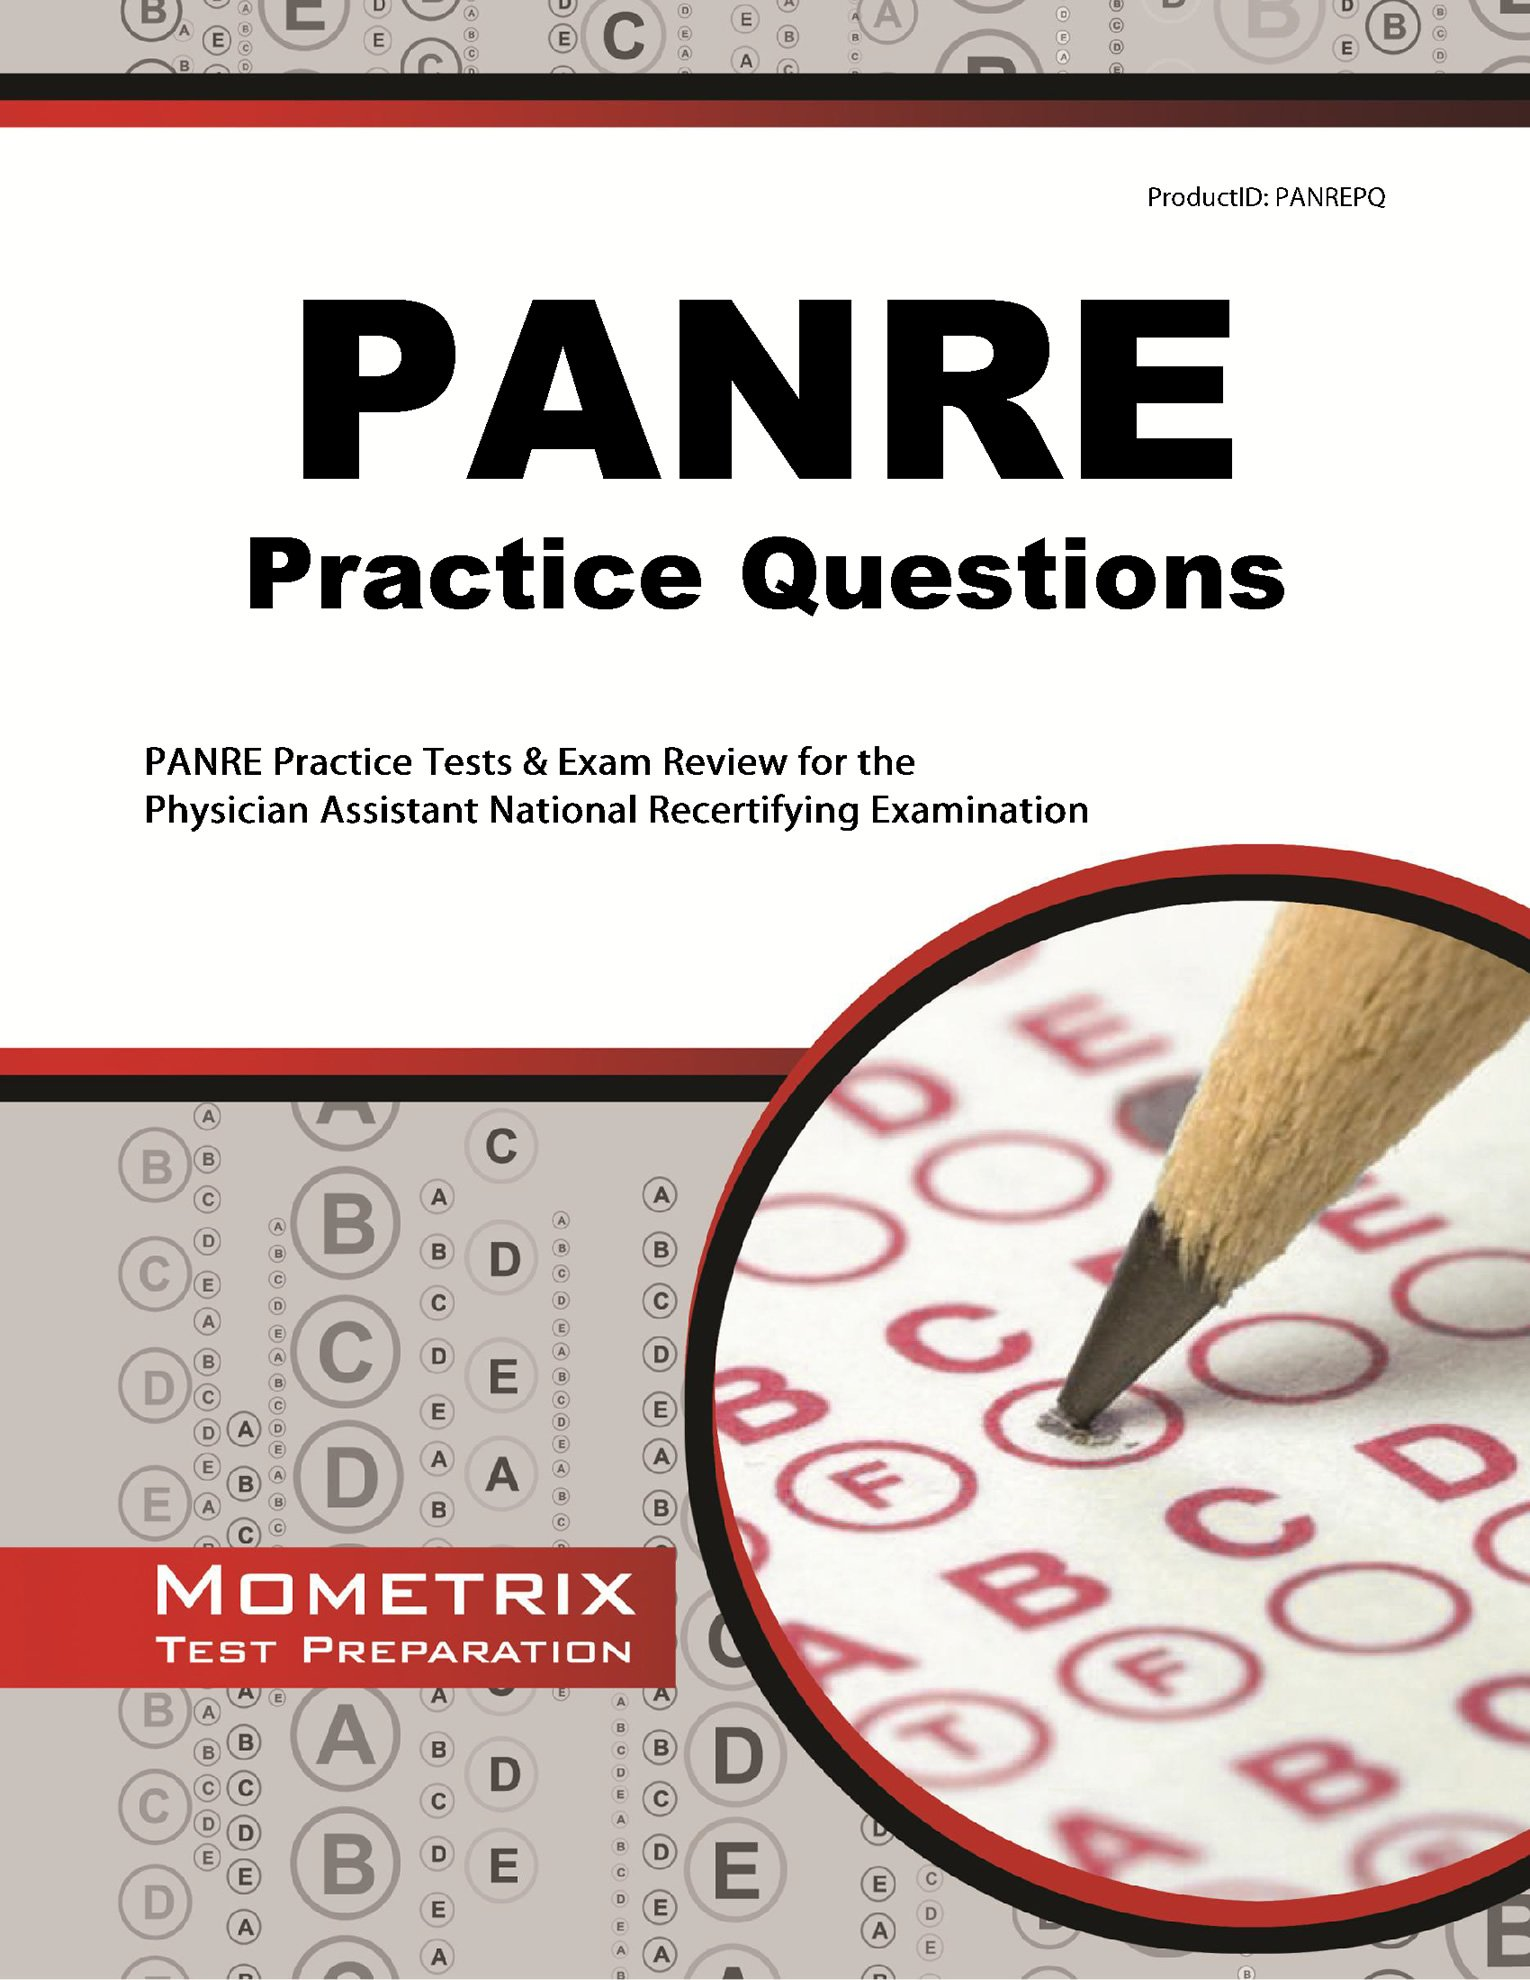 PANRE Practice Questions: PANRE Practice Tests & Exam Review for the Physician Assistant National Recertifying Examination